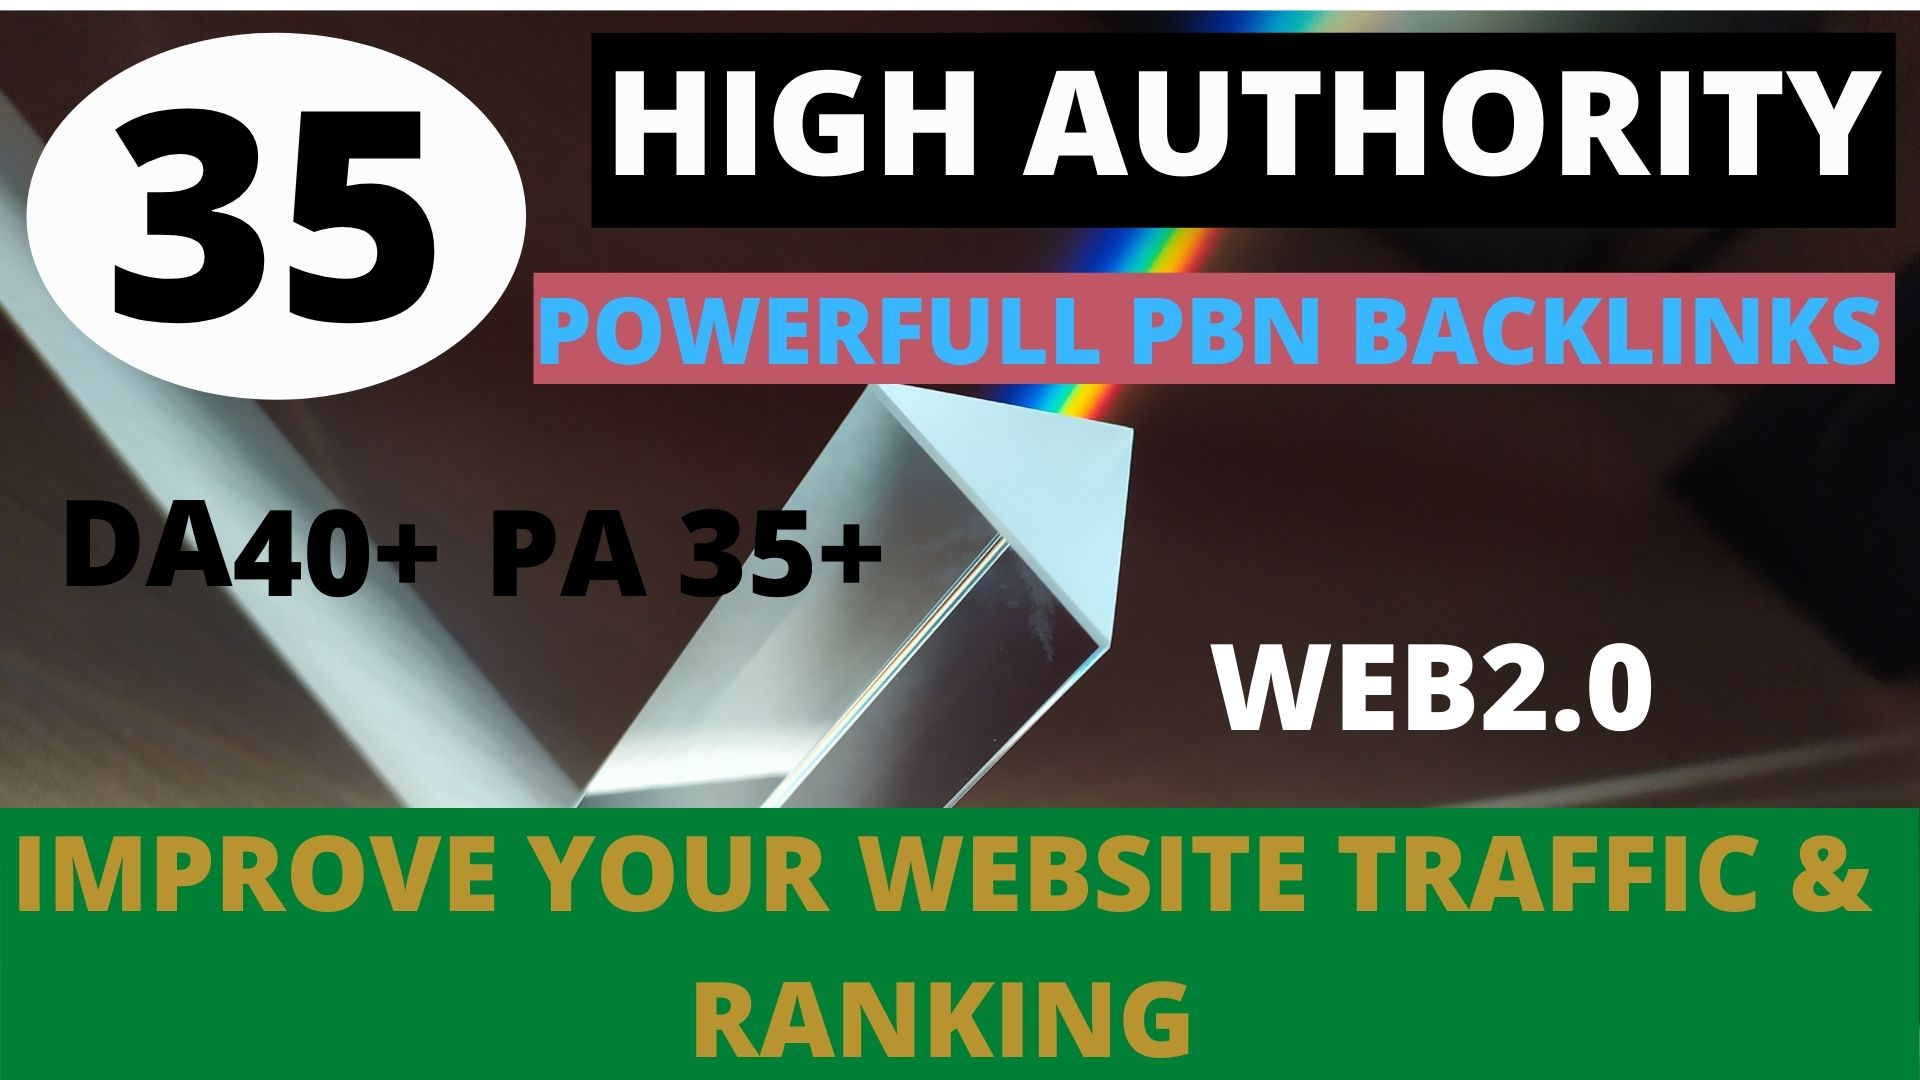 Build 35+ pbn backlink with high DA/PA/TF/CF on your homepage with unique website